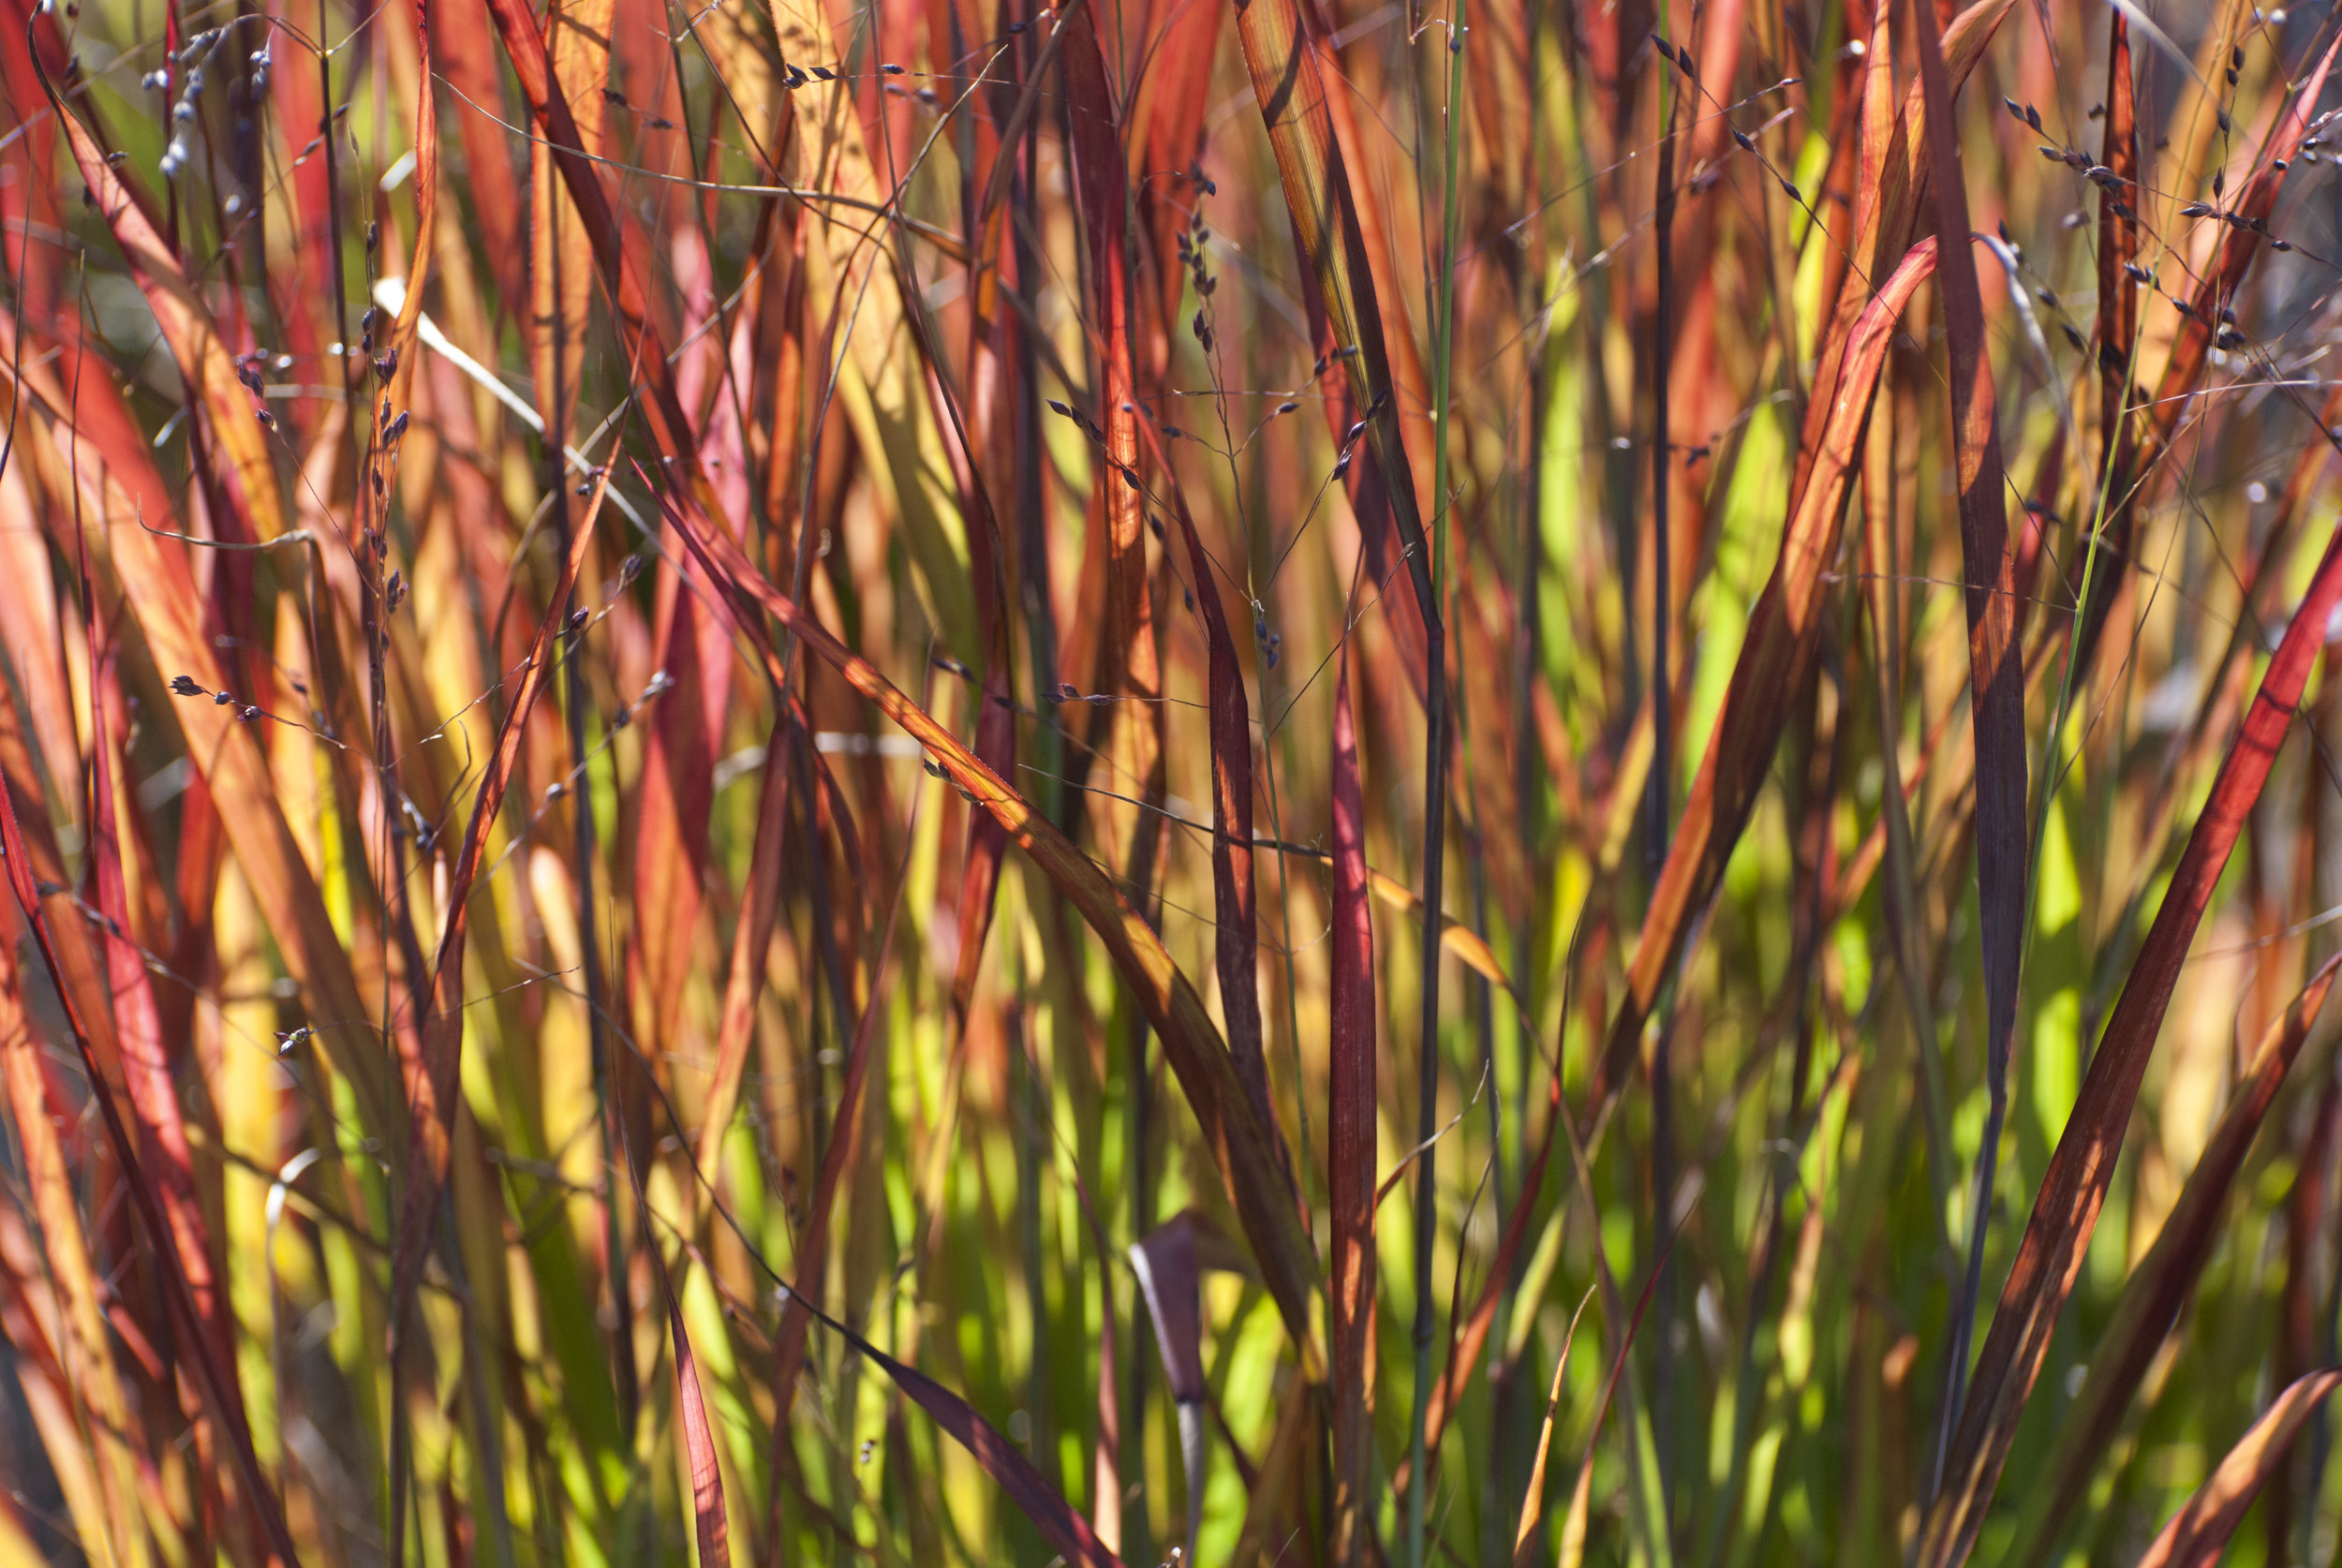 Japanese Grasses; Honorable Mention, The Oregonian Garden Photo Contest, 2008